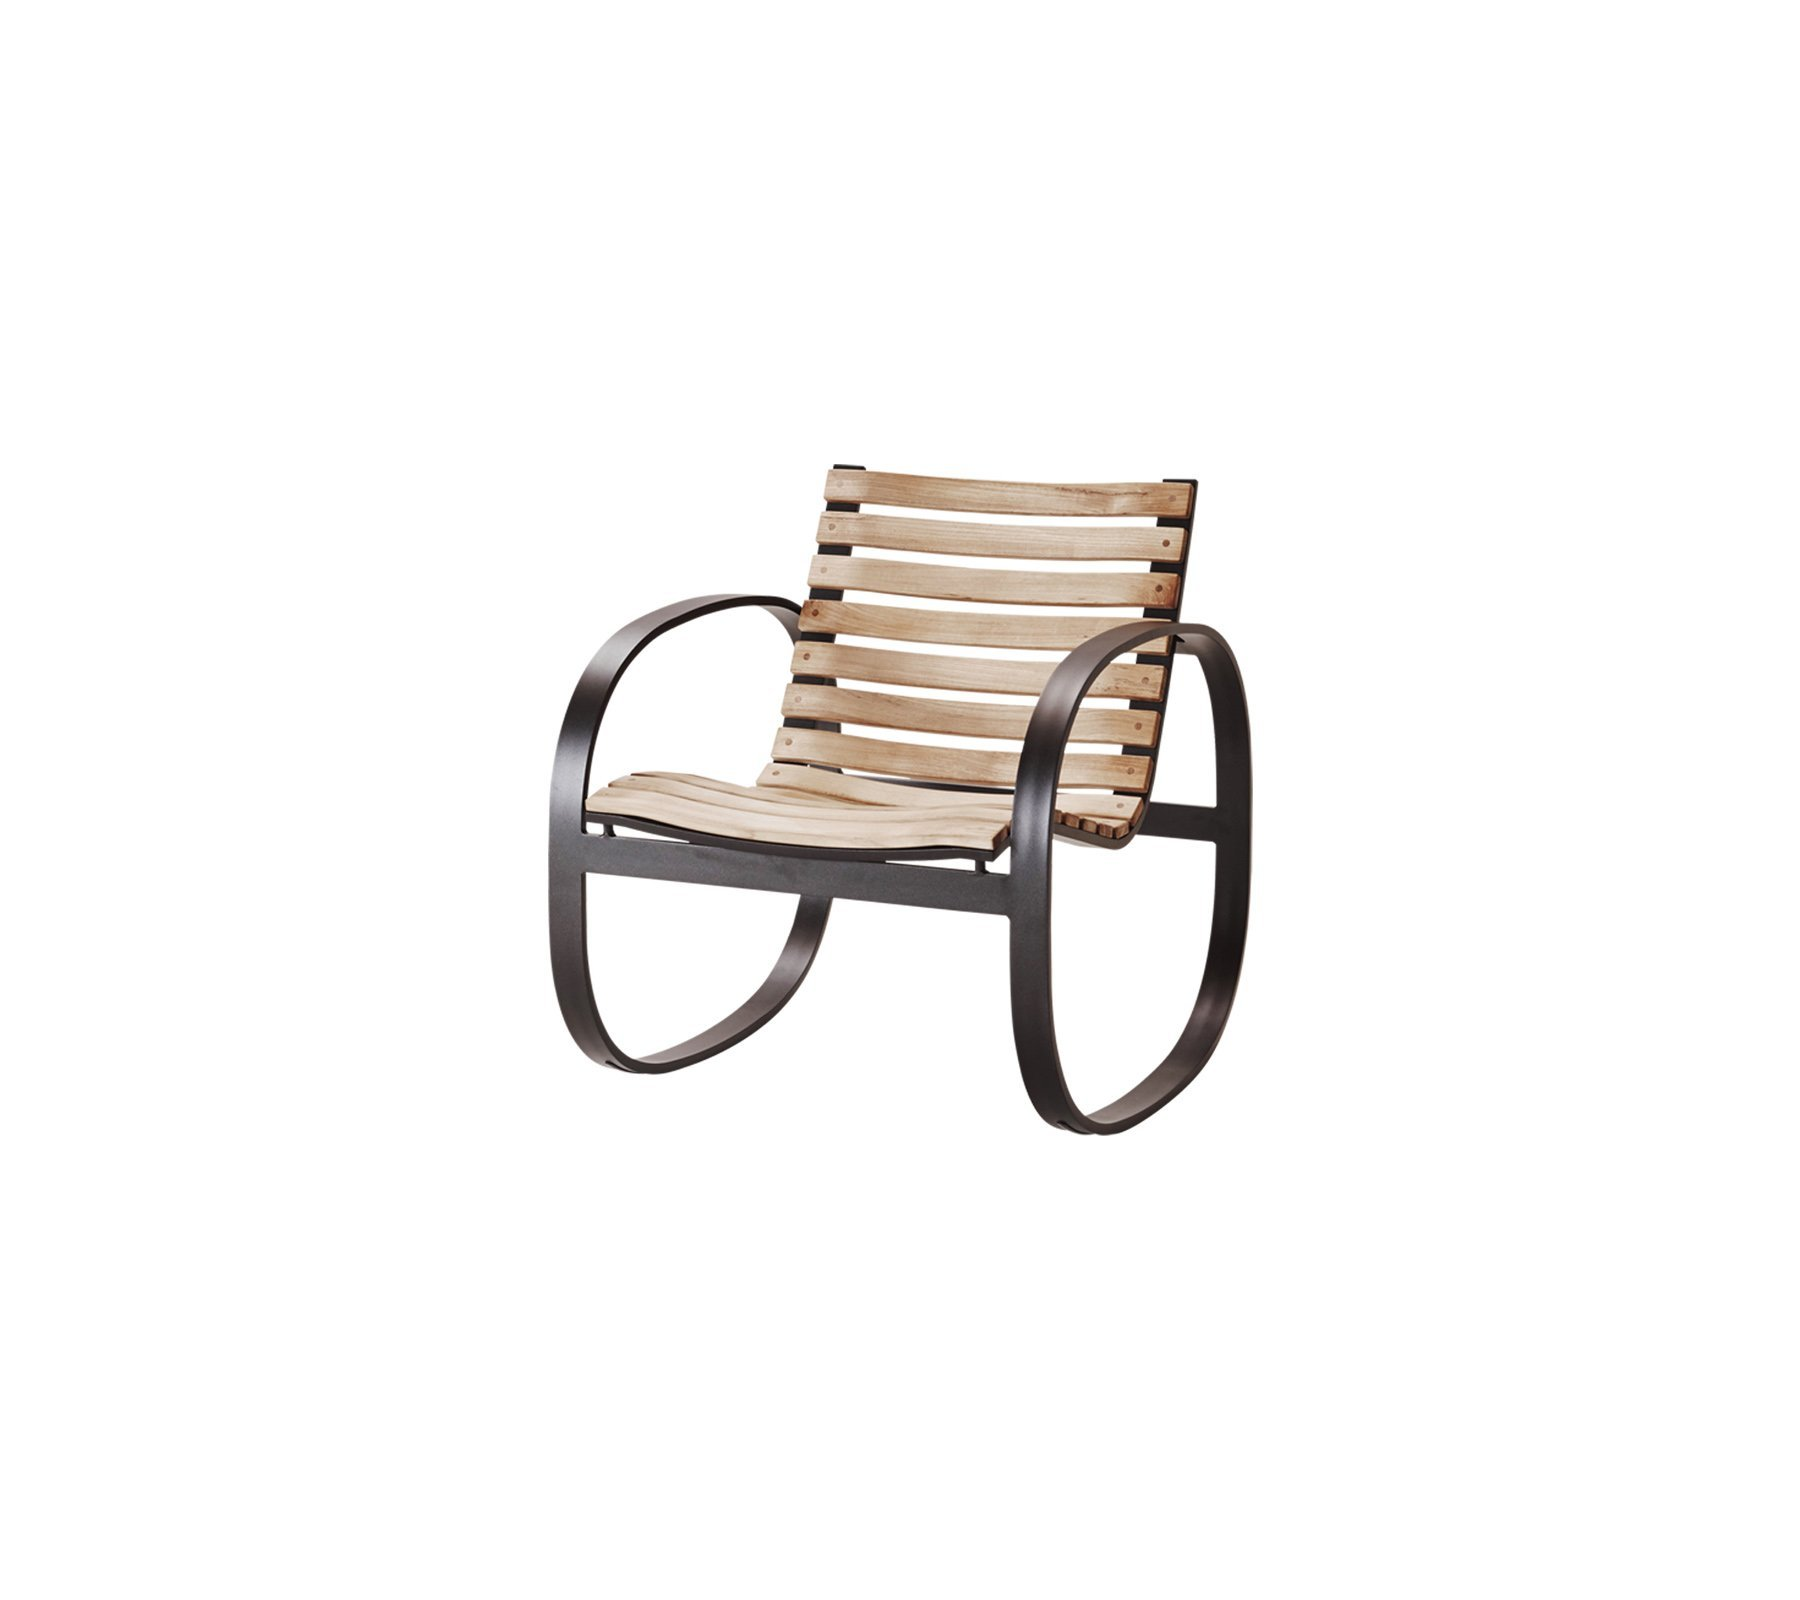 Parc Rocking Chair  from Cane-line, designed by Foersom & Hiort-Lorenzen MDD